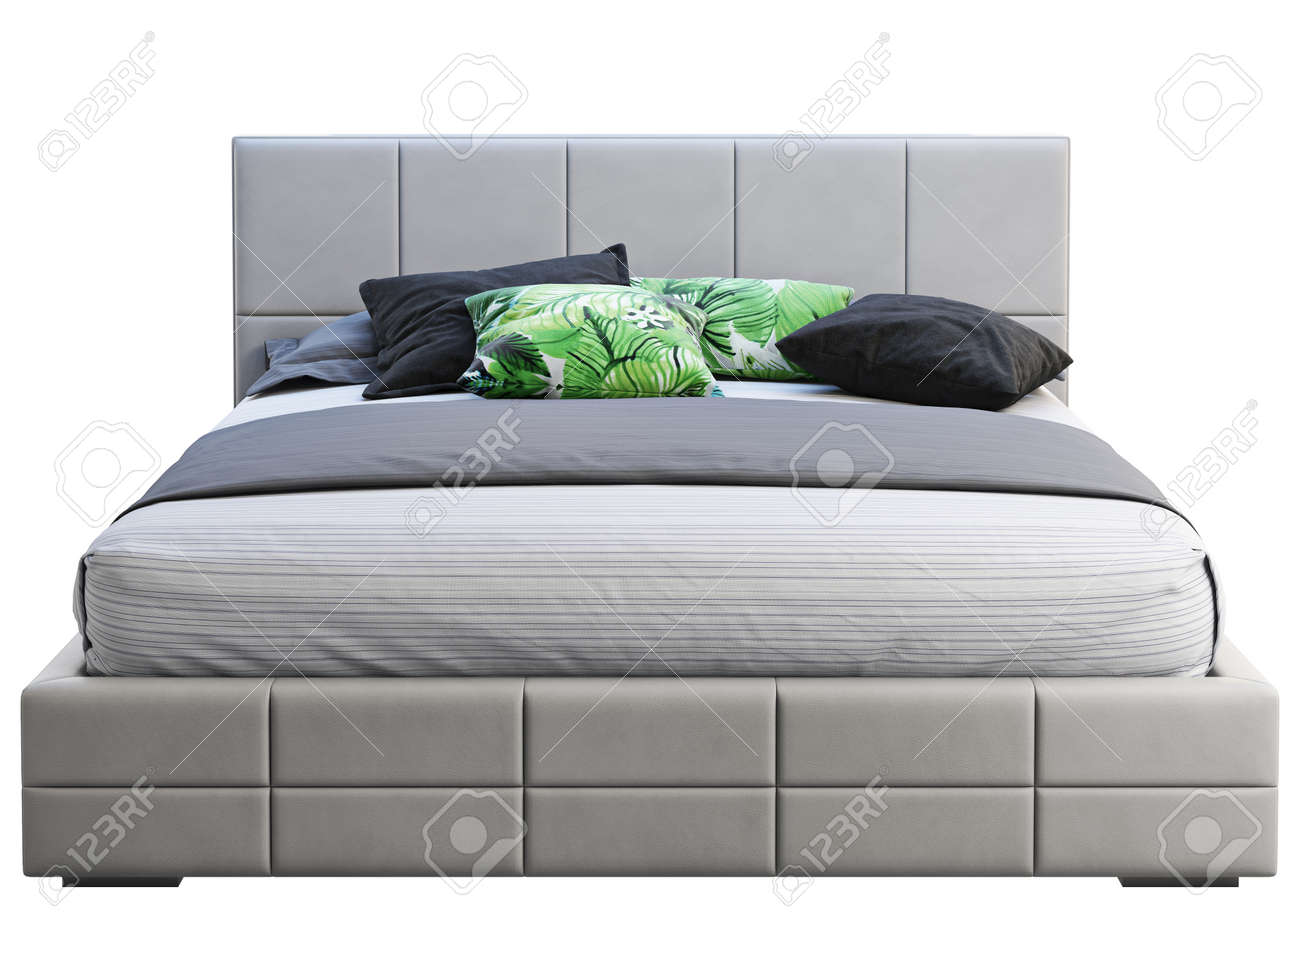 Modern Double Bed On White Background Leather Upholstery Frame Stock Photo Picture And Royalty Free Image Image 138161693